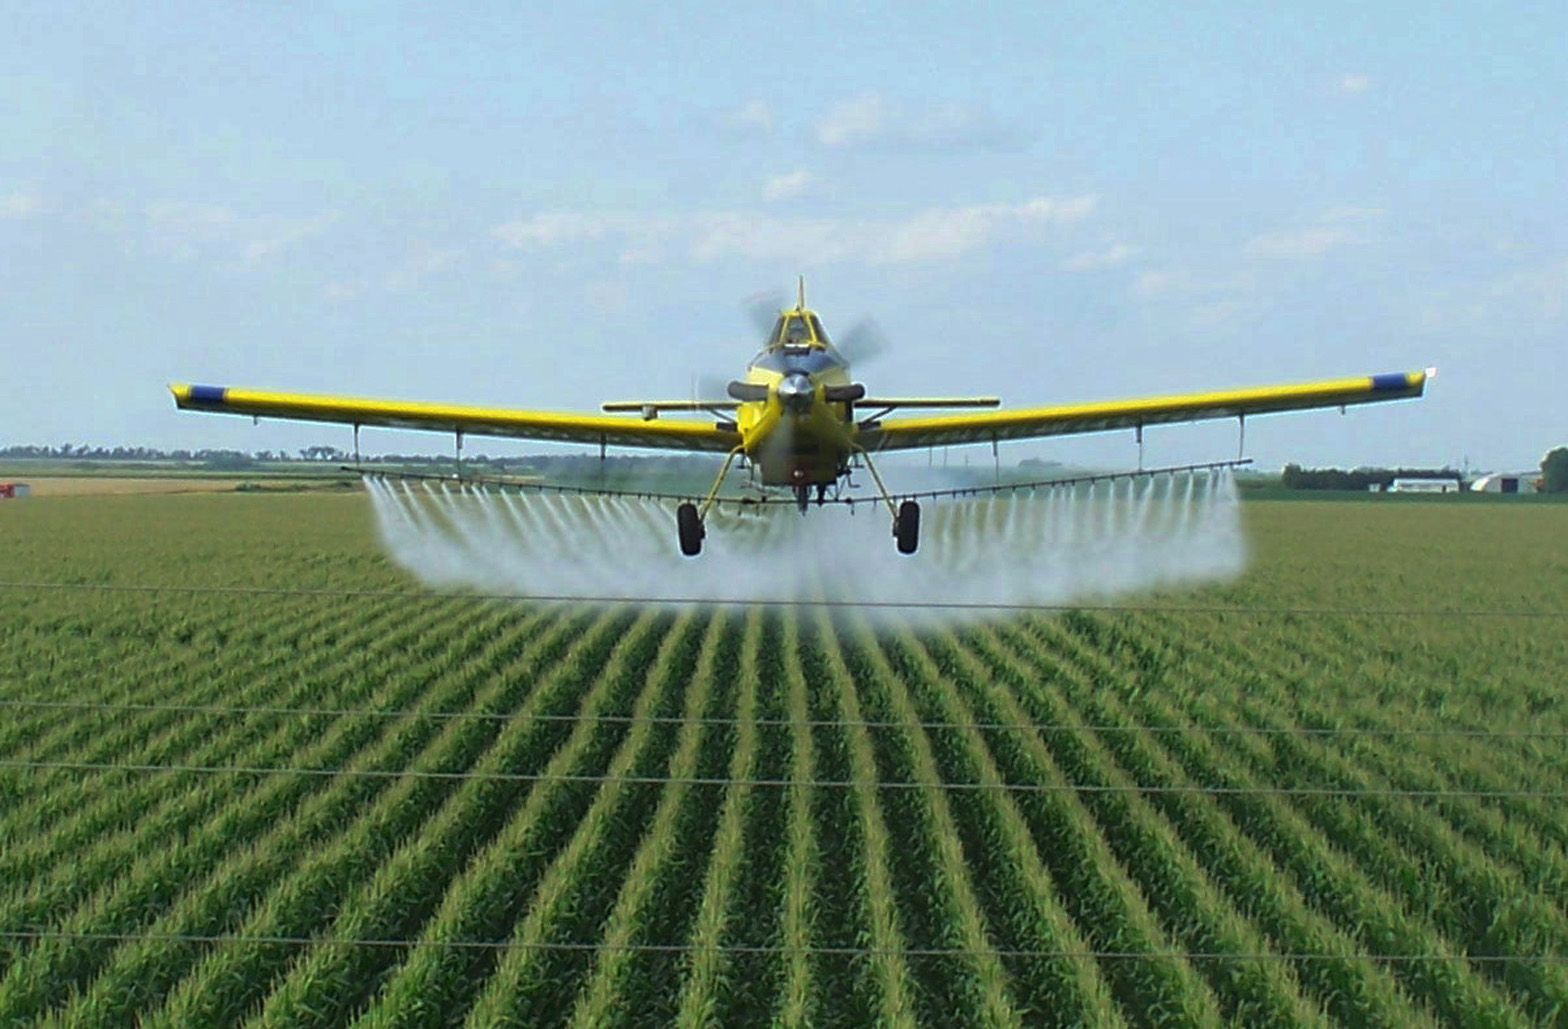 Drones for Agriculture- Cropdusting